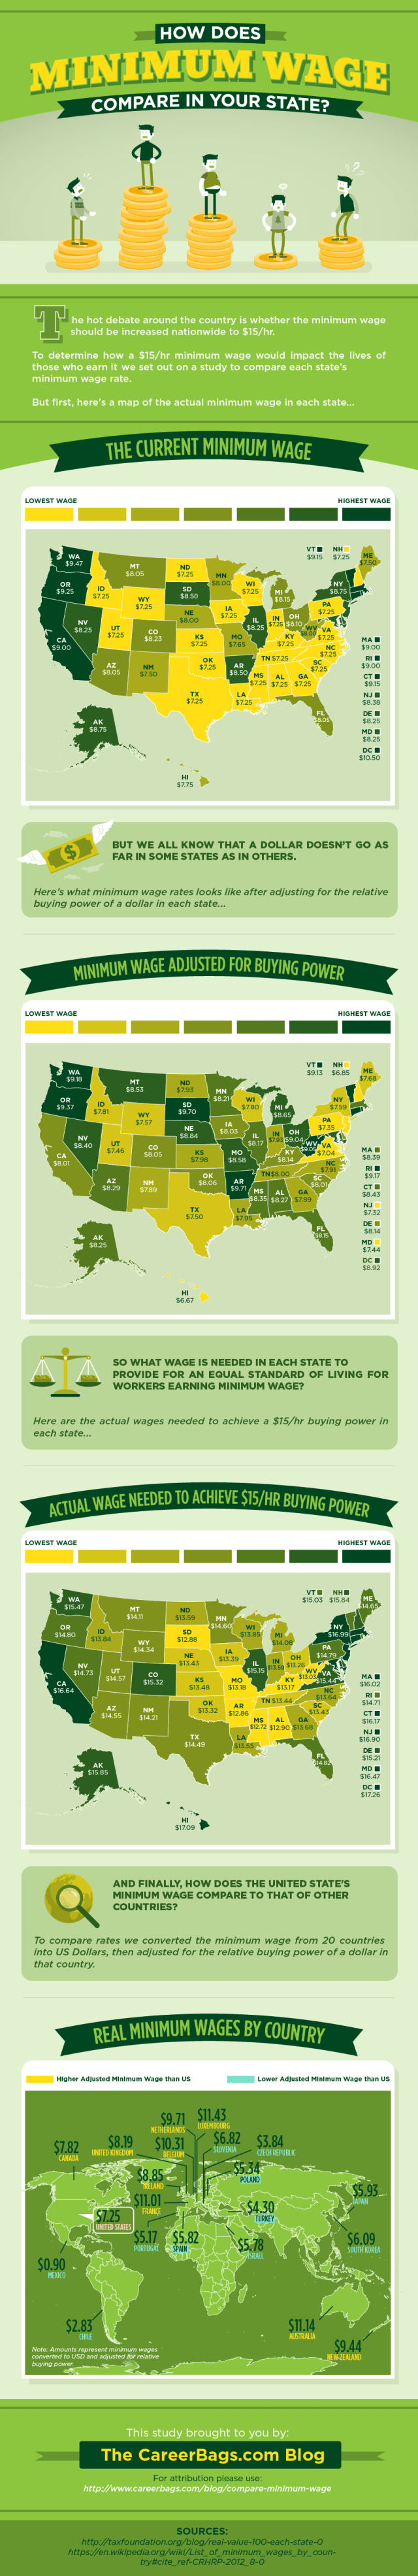 how-does-minimum-wage-compare-in-your-state_55d288967060e